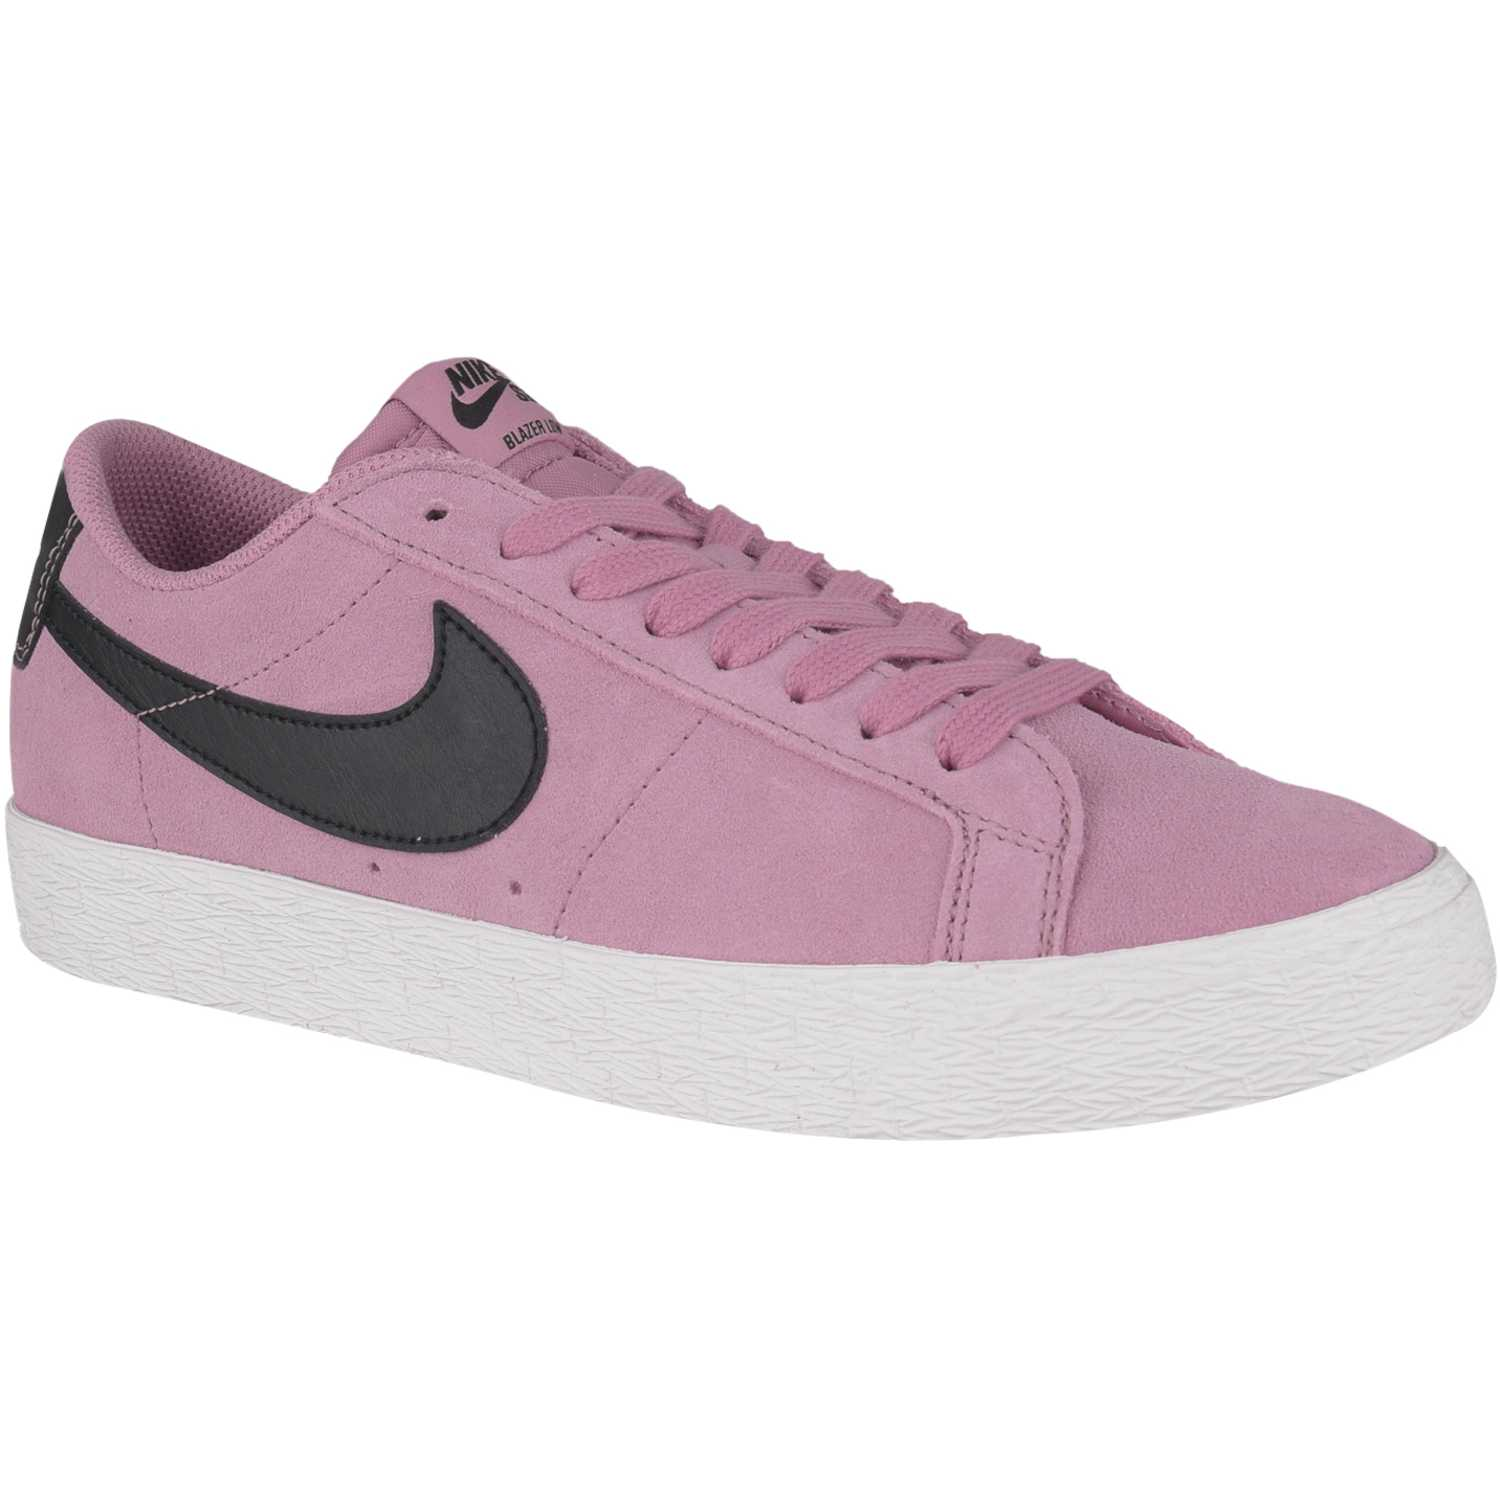 innovative design 4d99e 06921 Zapatilla de Hombre Nike Rosado   negro sb blazer zoom low